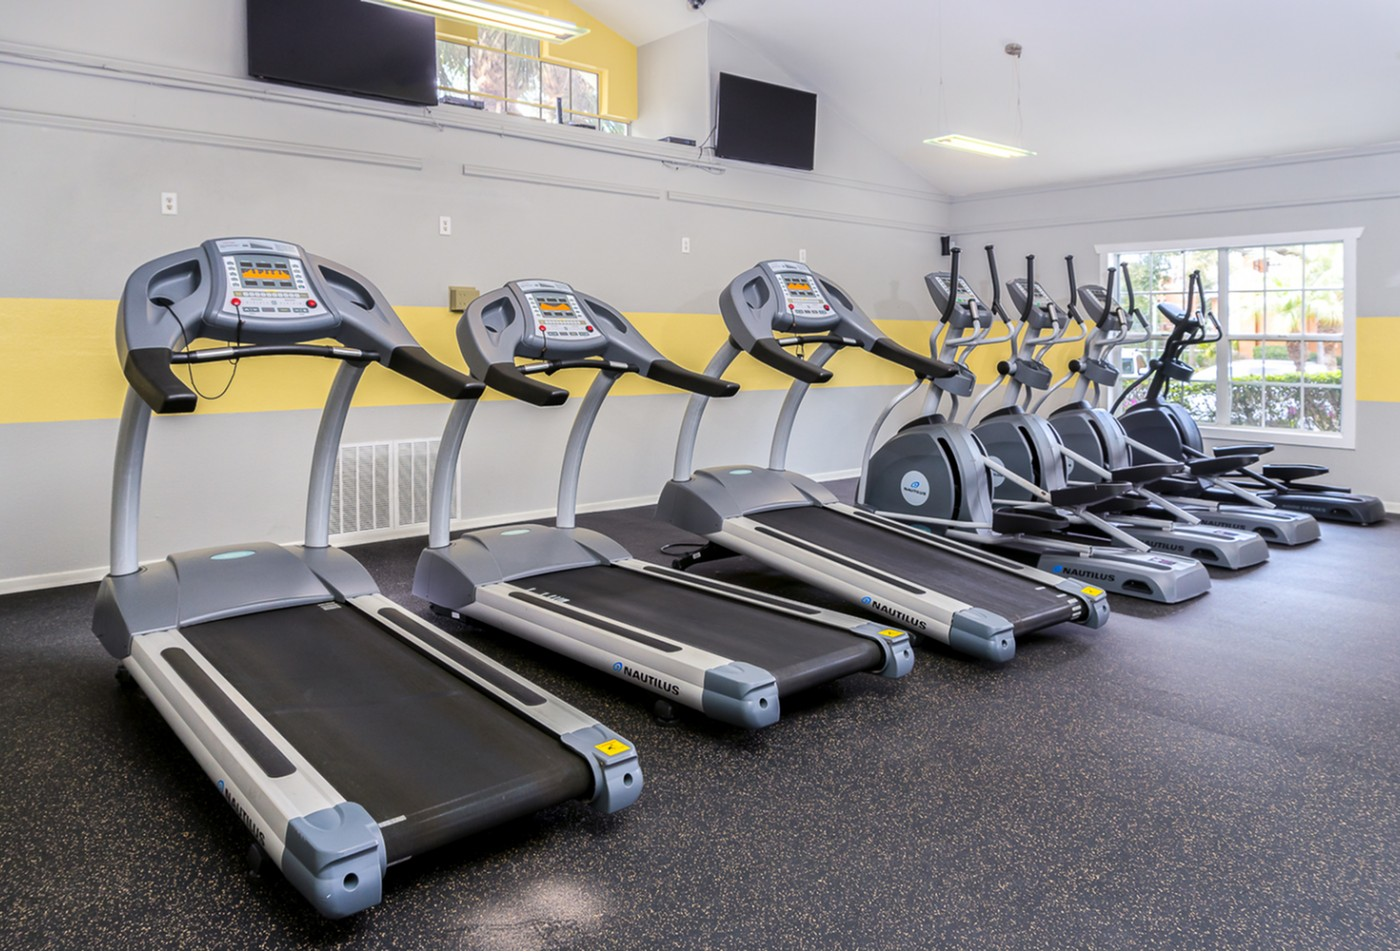 Fitness center with treadmills and spinning equipment.